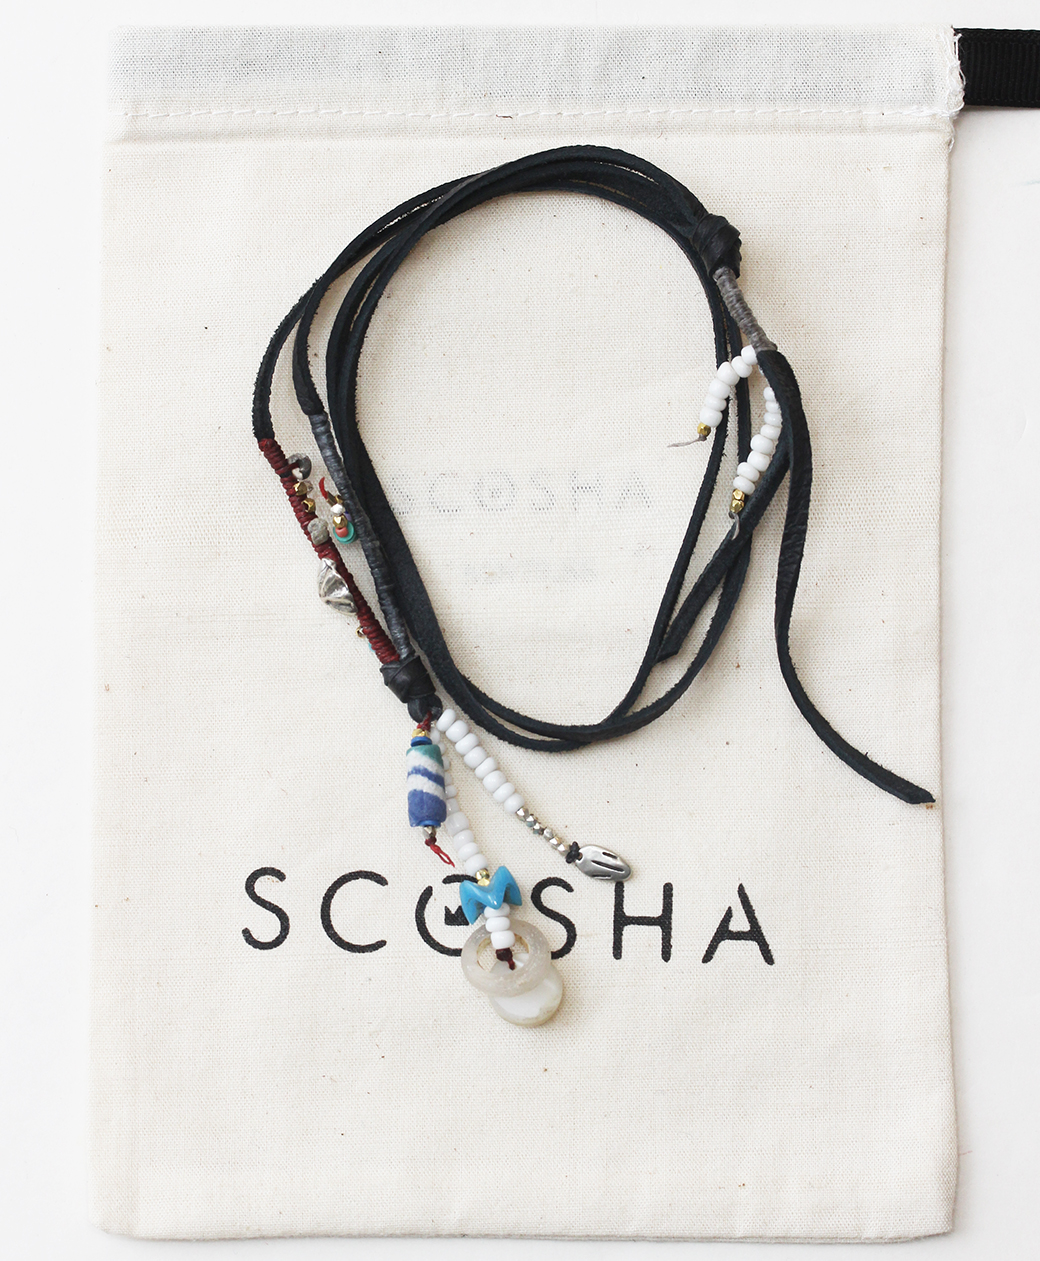 scosha LEATHER CORD NECKLACE(BLACK CORD)